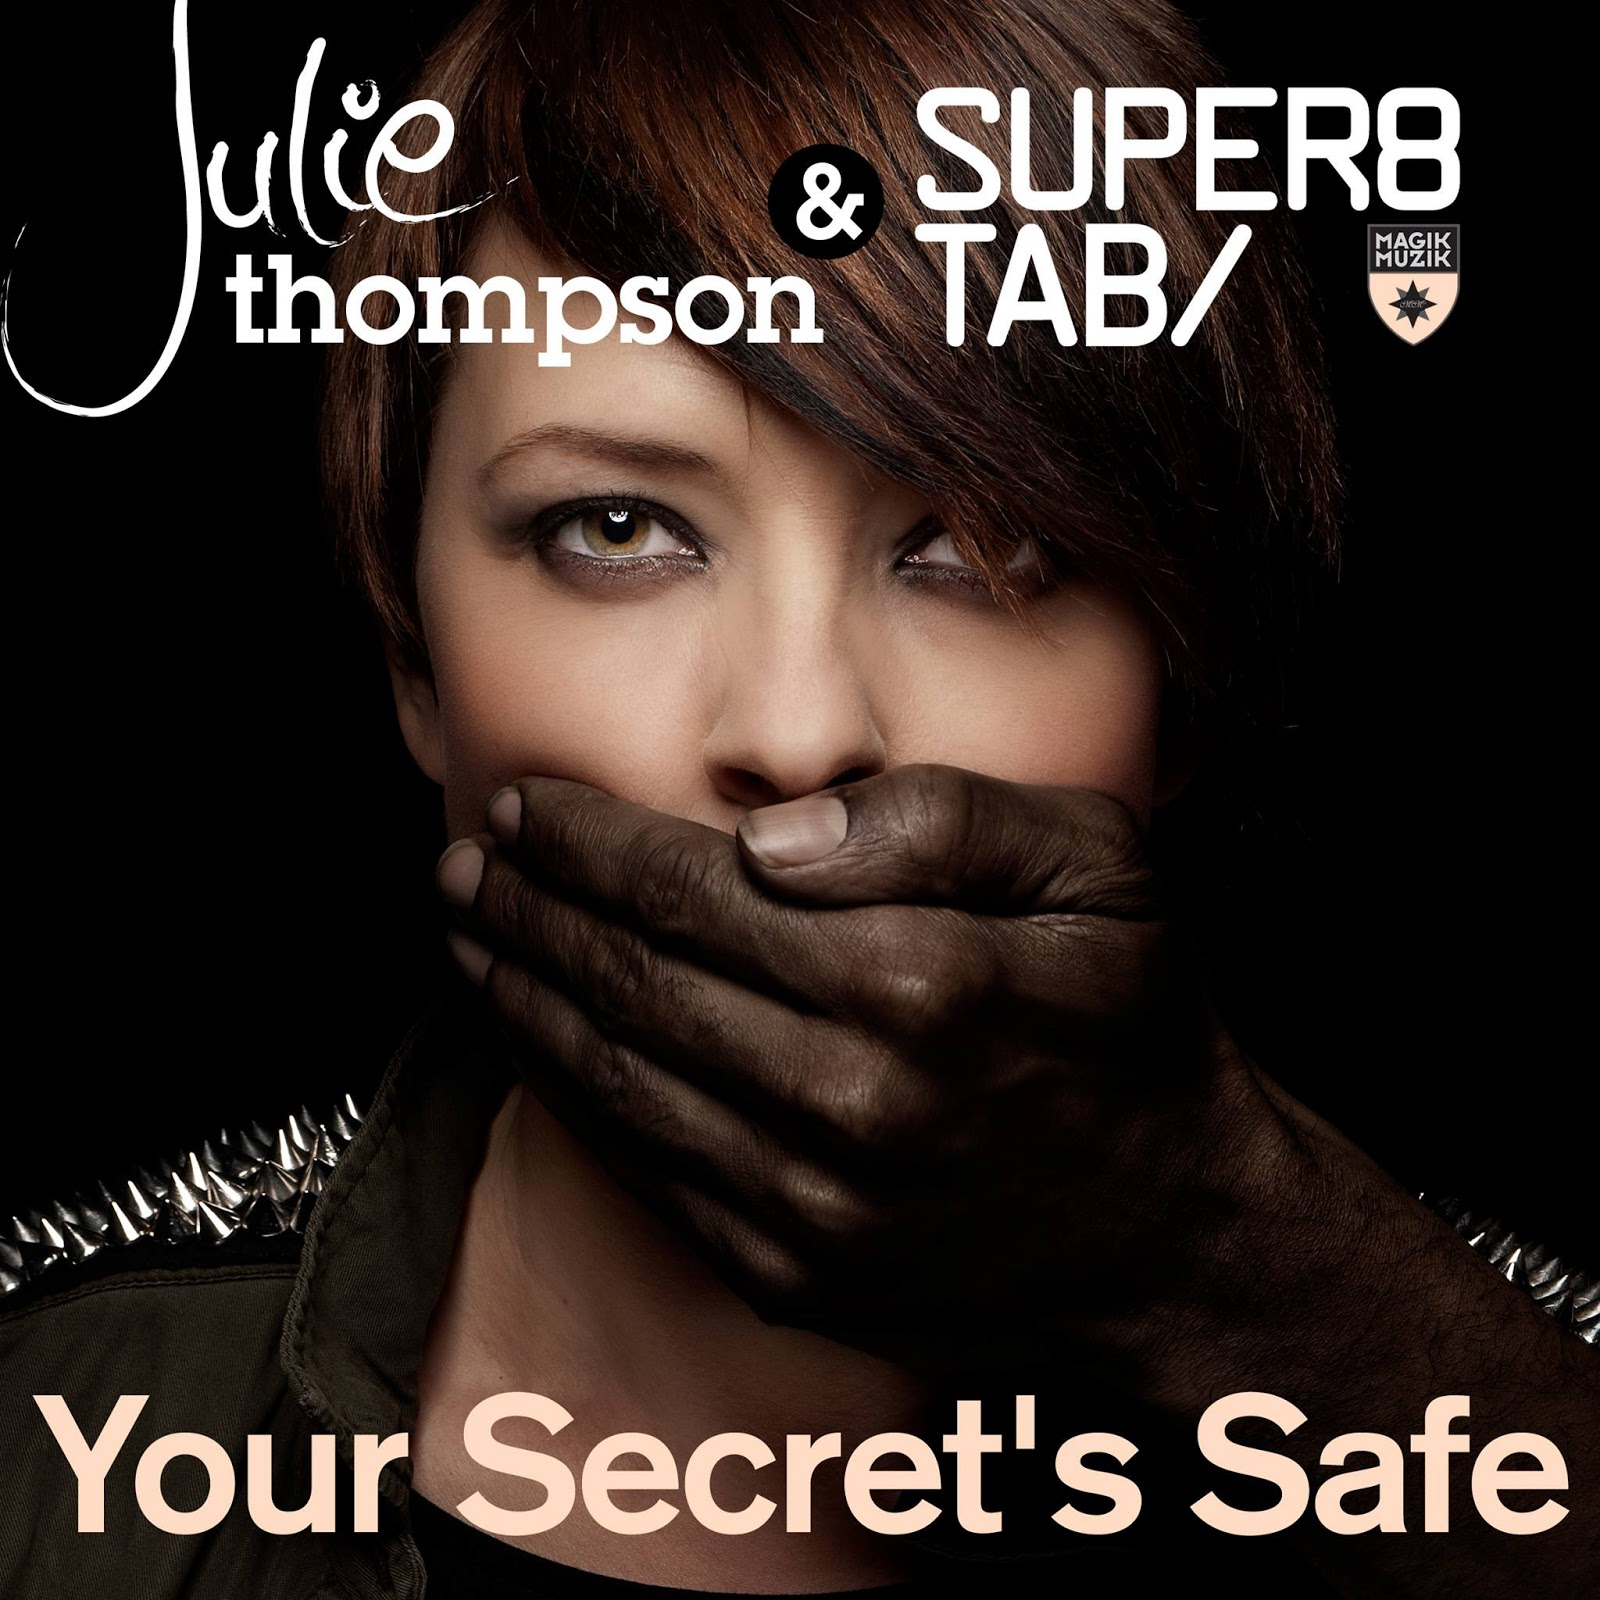 Super8 & Tab - Your Secret's Safe featuring Julie Thompson